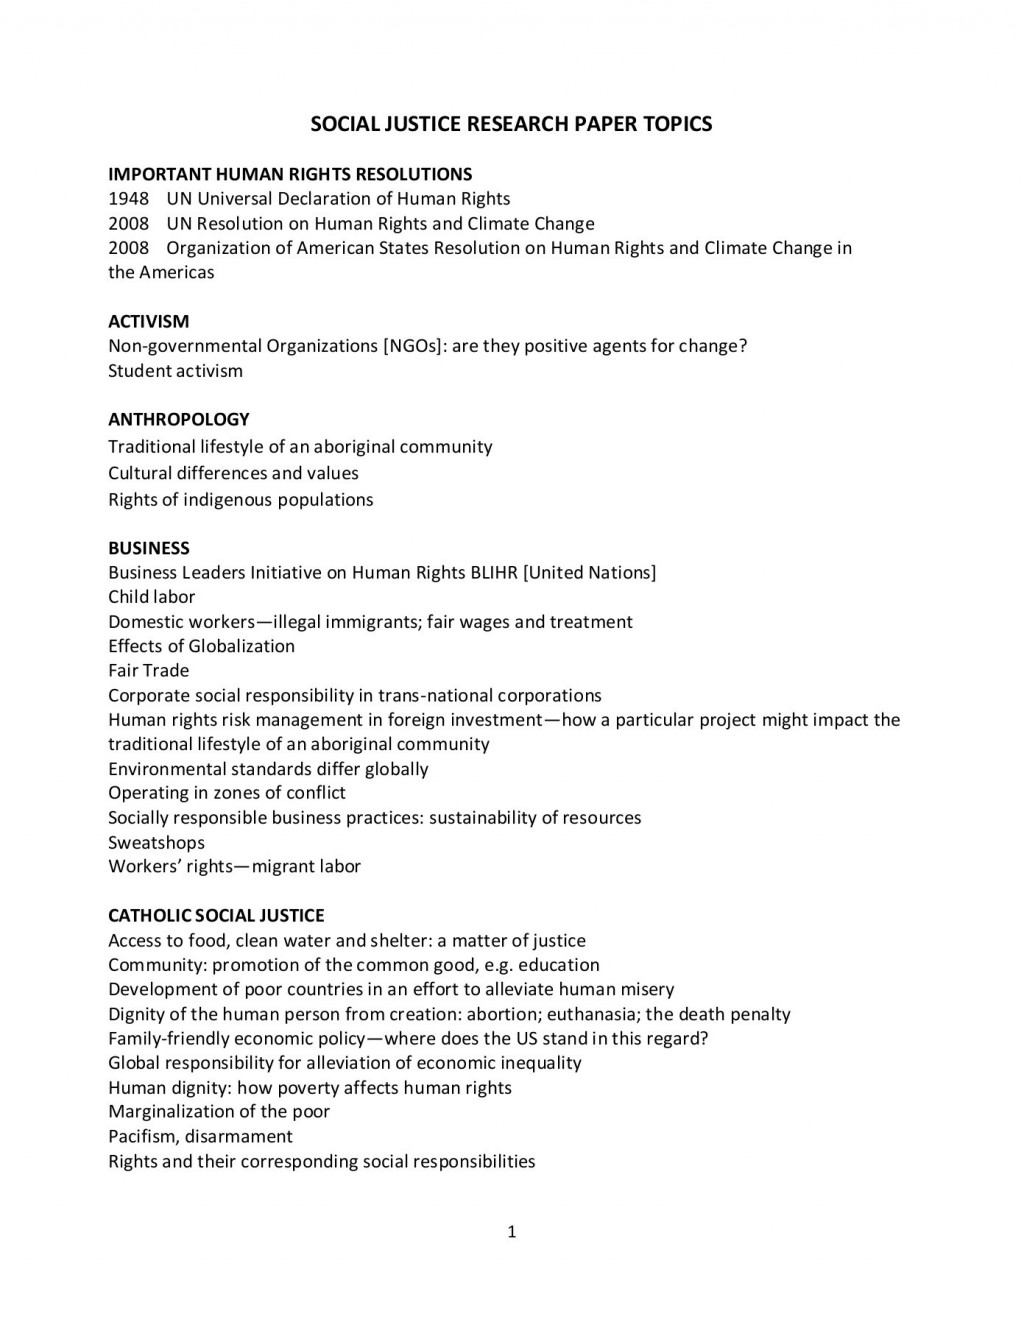 006 Topics For Research Awful Paper In Developmental Psychology Civil Engineering Large